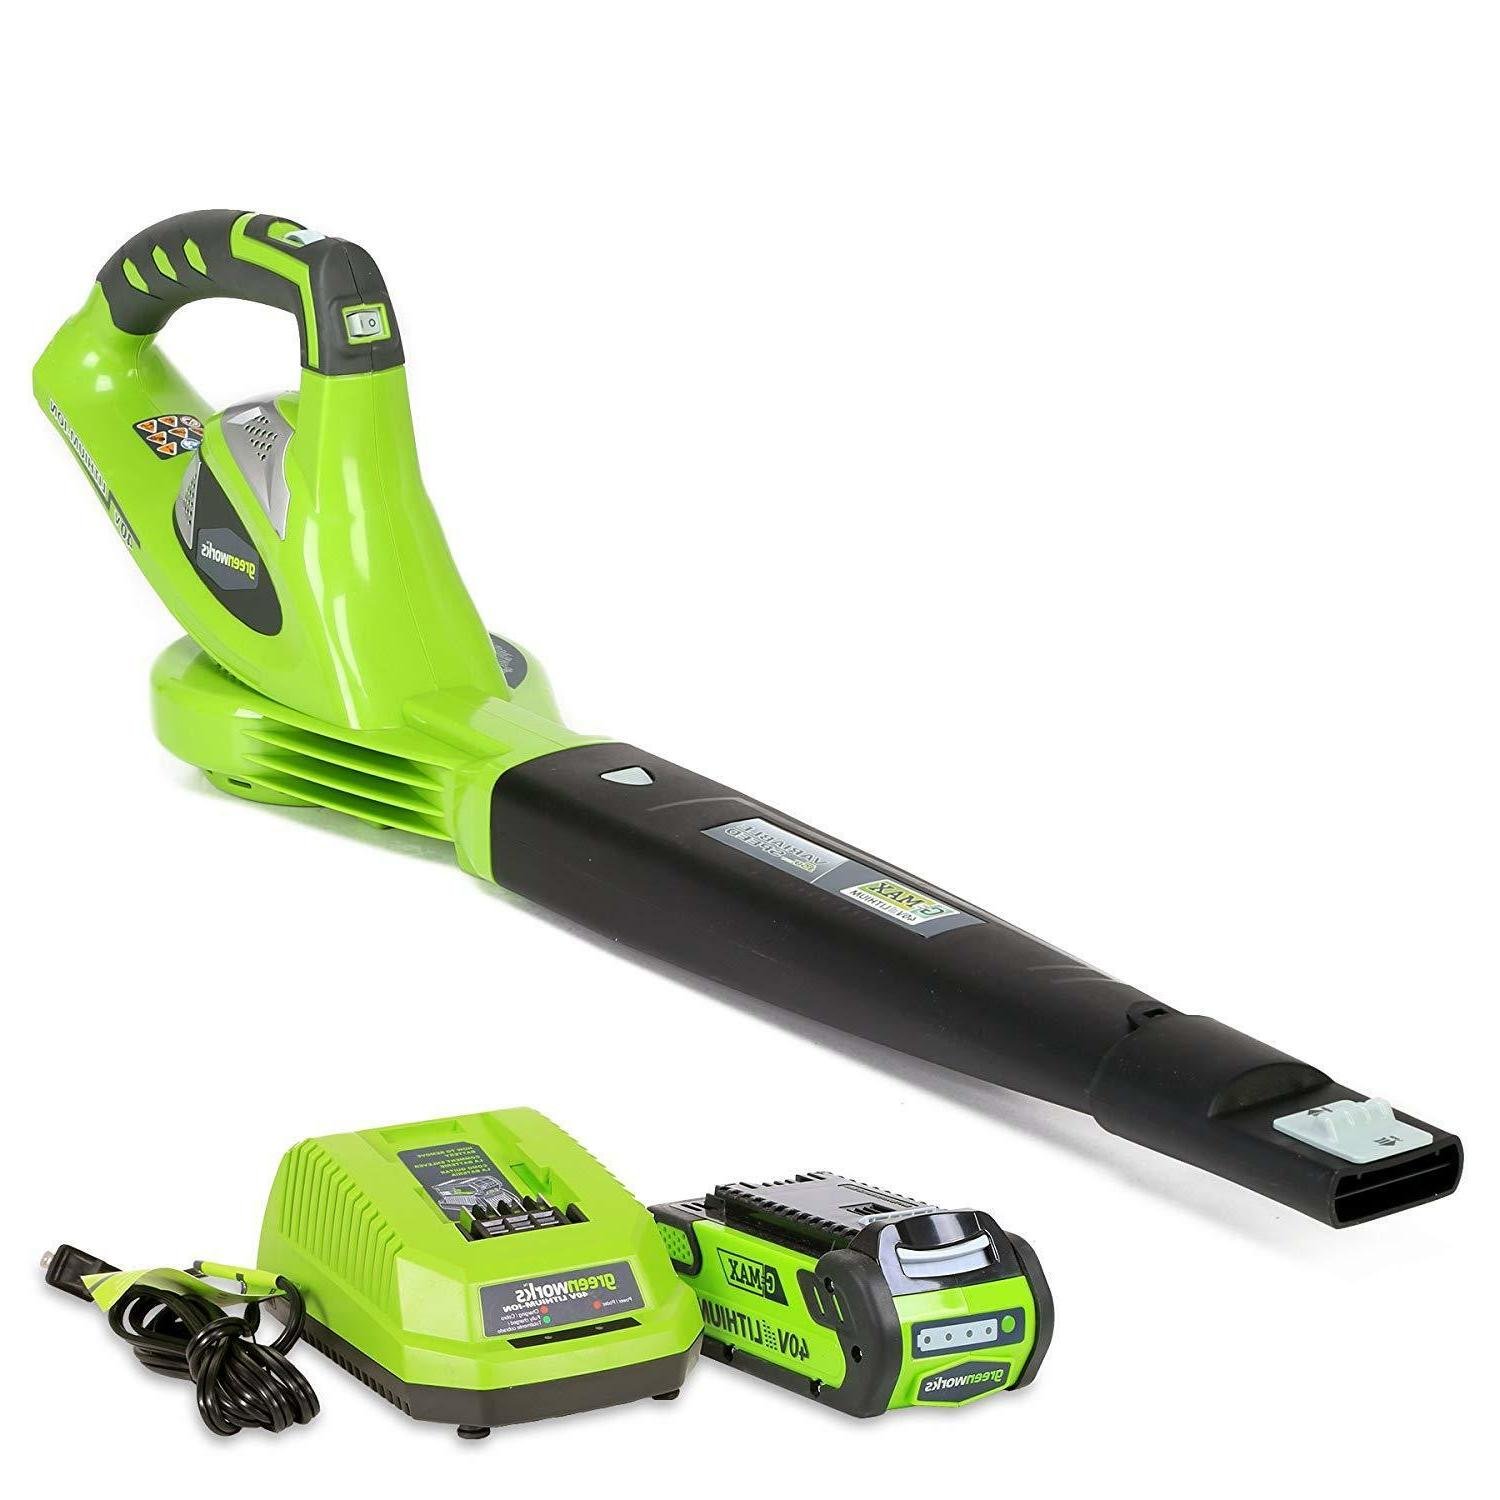 40v 150 mph variable speed cordless blower